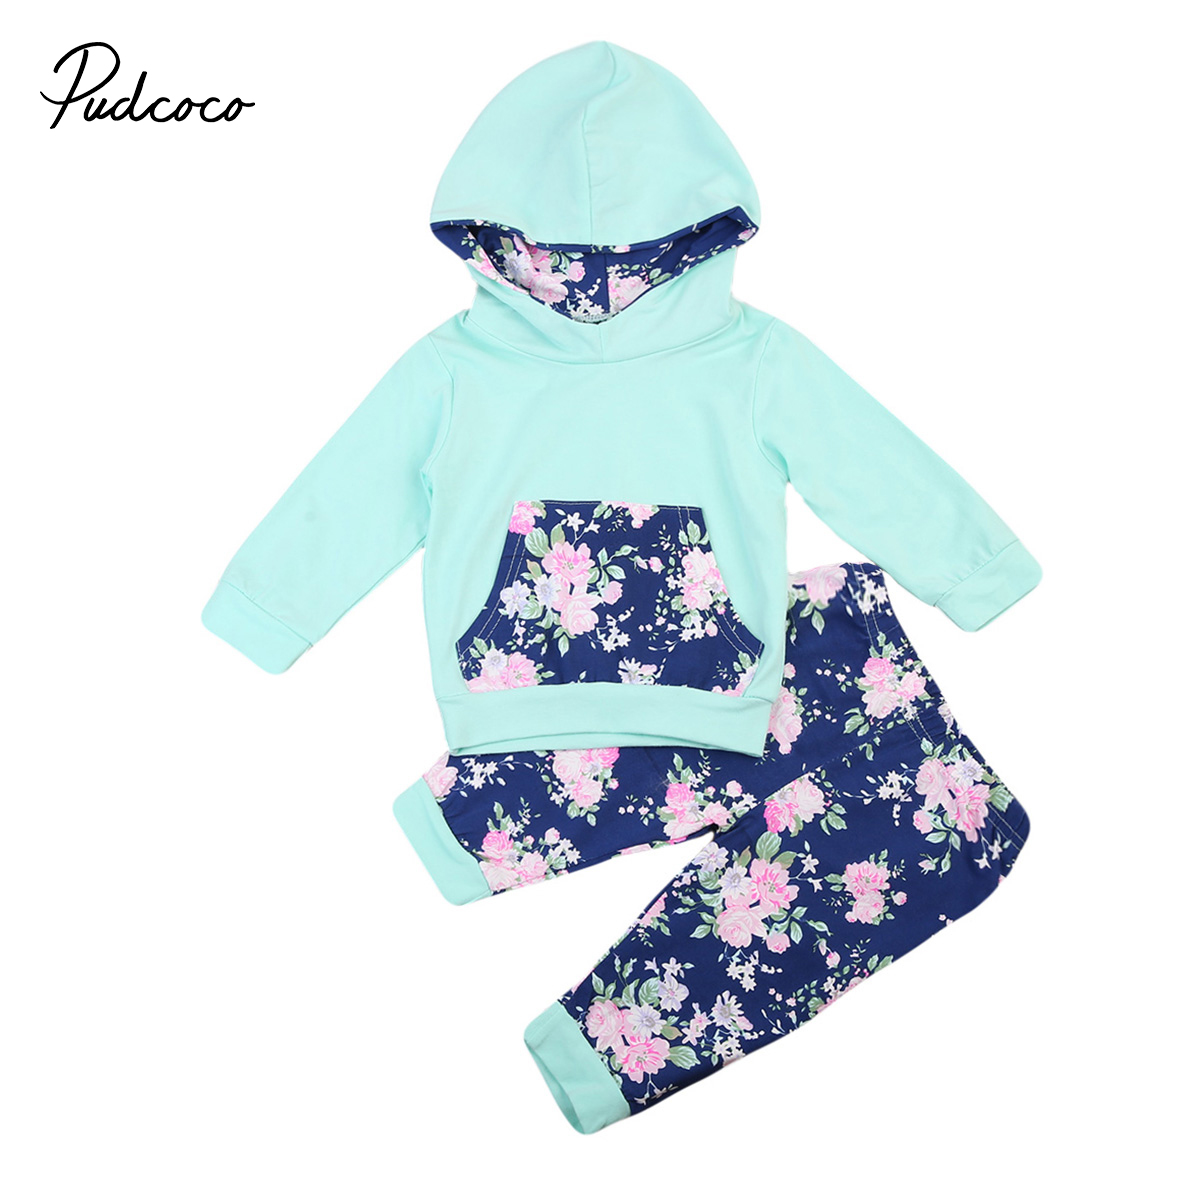 Newborn Baby Girl Clothes Floral Long Sleeve Hooded Hoodie Tops+Pants 2pcs Set Cotton Baby Sets Cute Outfits